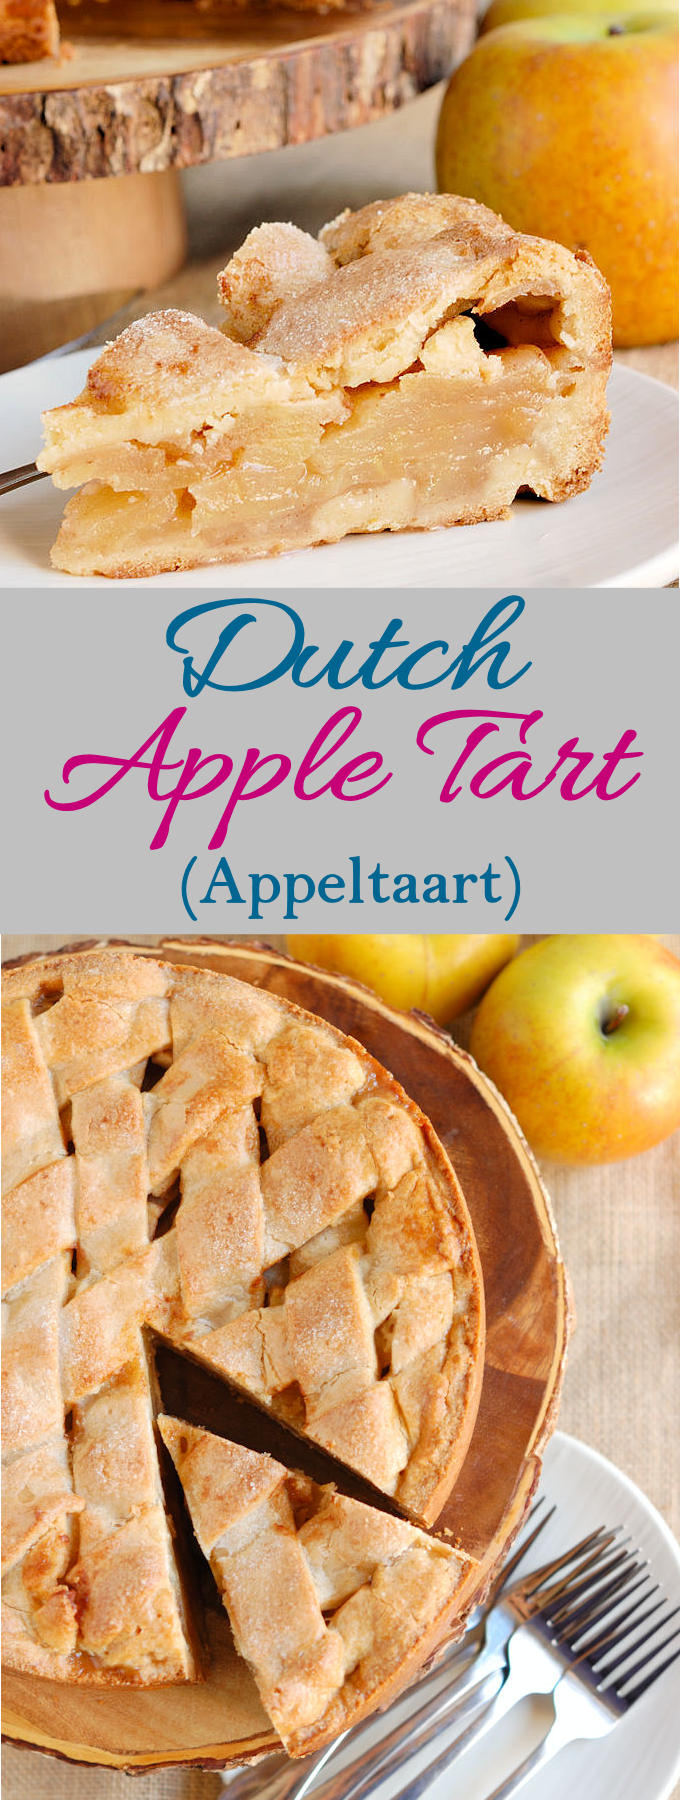 Dutch Apple Tart is made with a brown sugar cookie crust and a simple apple filling. This recipe is from my Dutch mother-in-law.